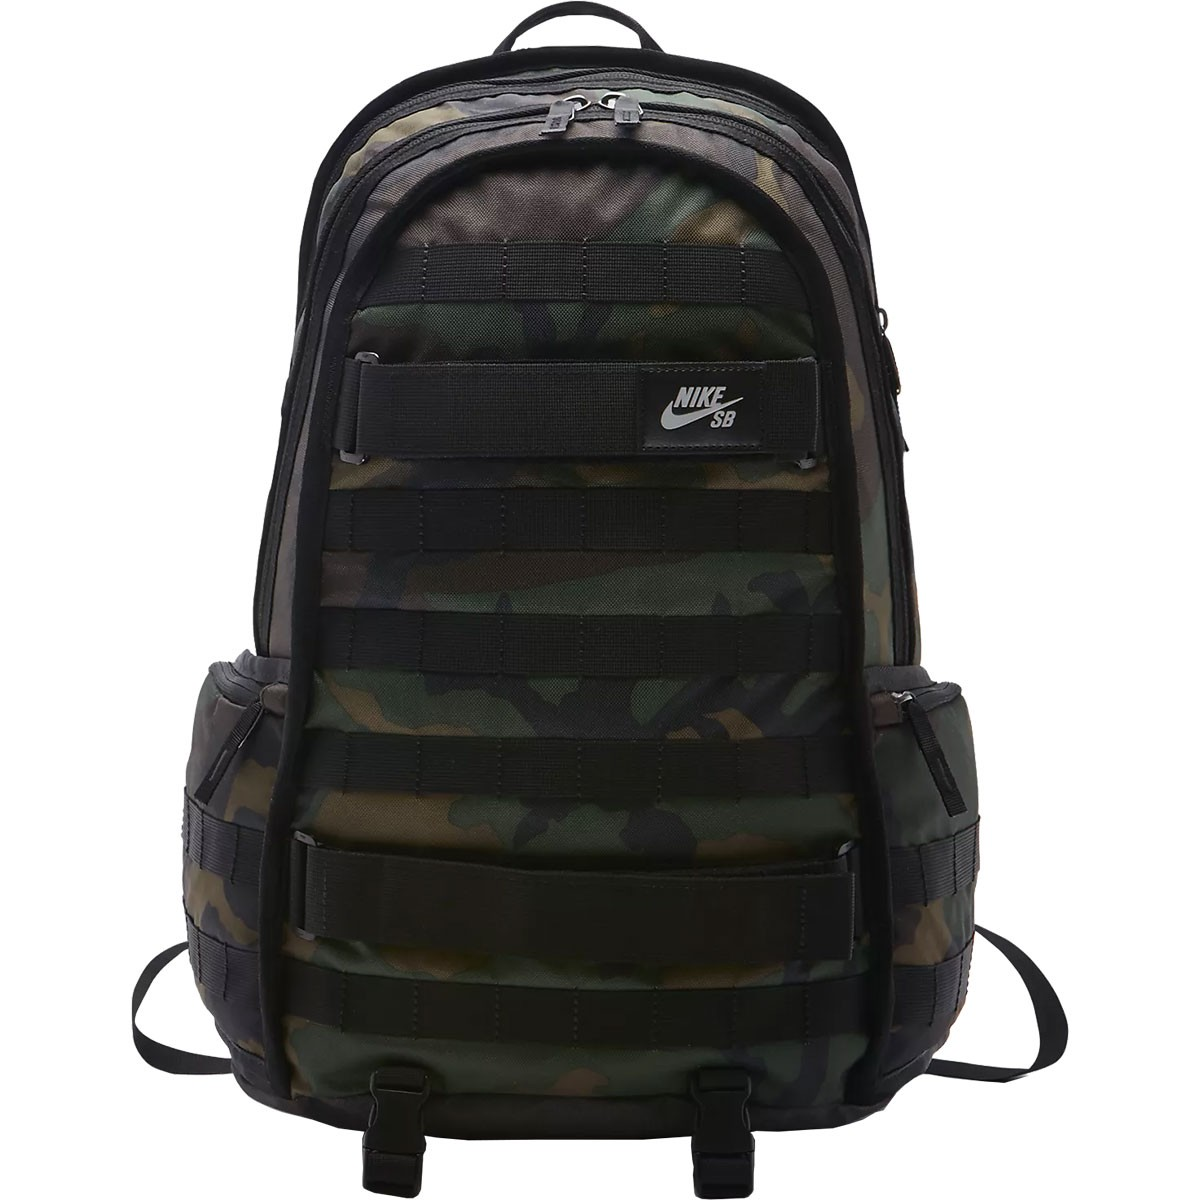 1eb712a2 Nike SB RPM Graphic Backpack - Iguana/Black/Black